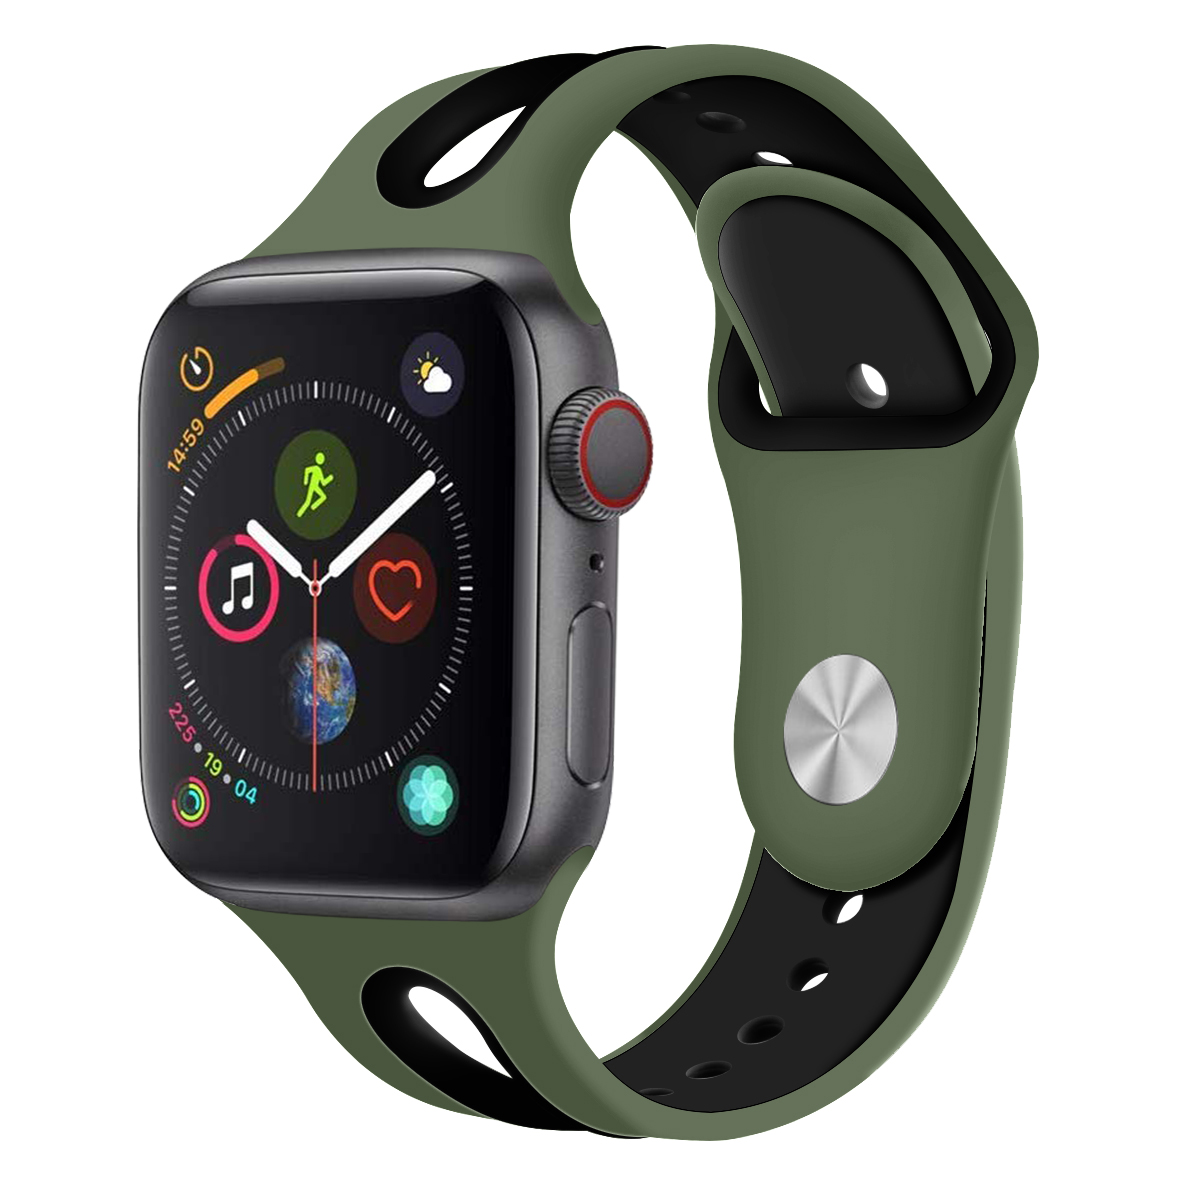 Compatible With Apple Watch Band 42mm 38mm 44mm 40mm Silicone Iwatch Bands Strap For Apple Watch Series 5/4/3/2/1 81003